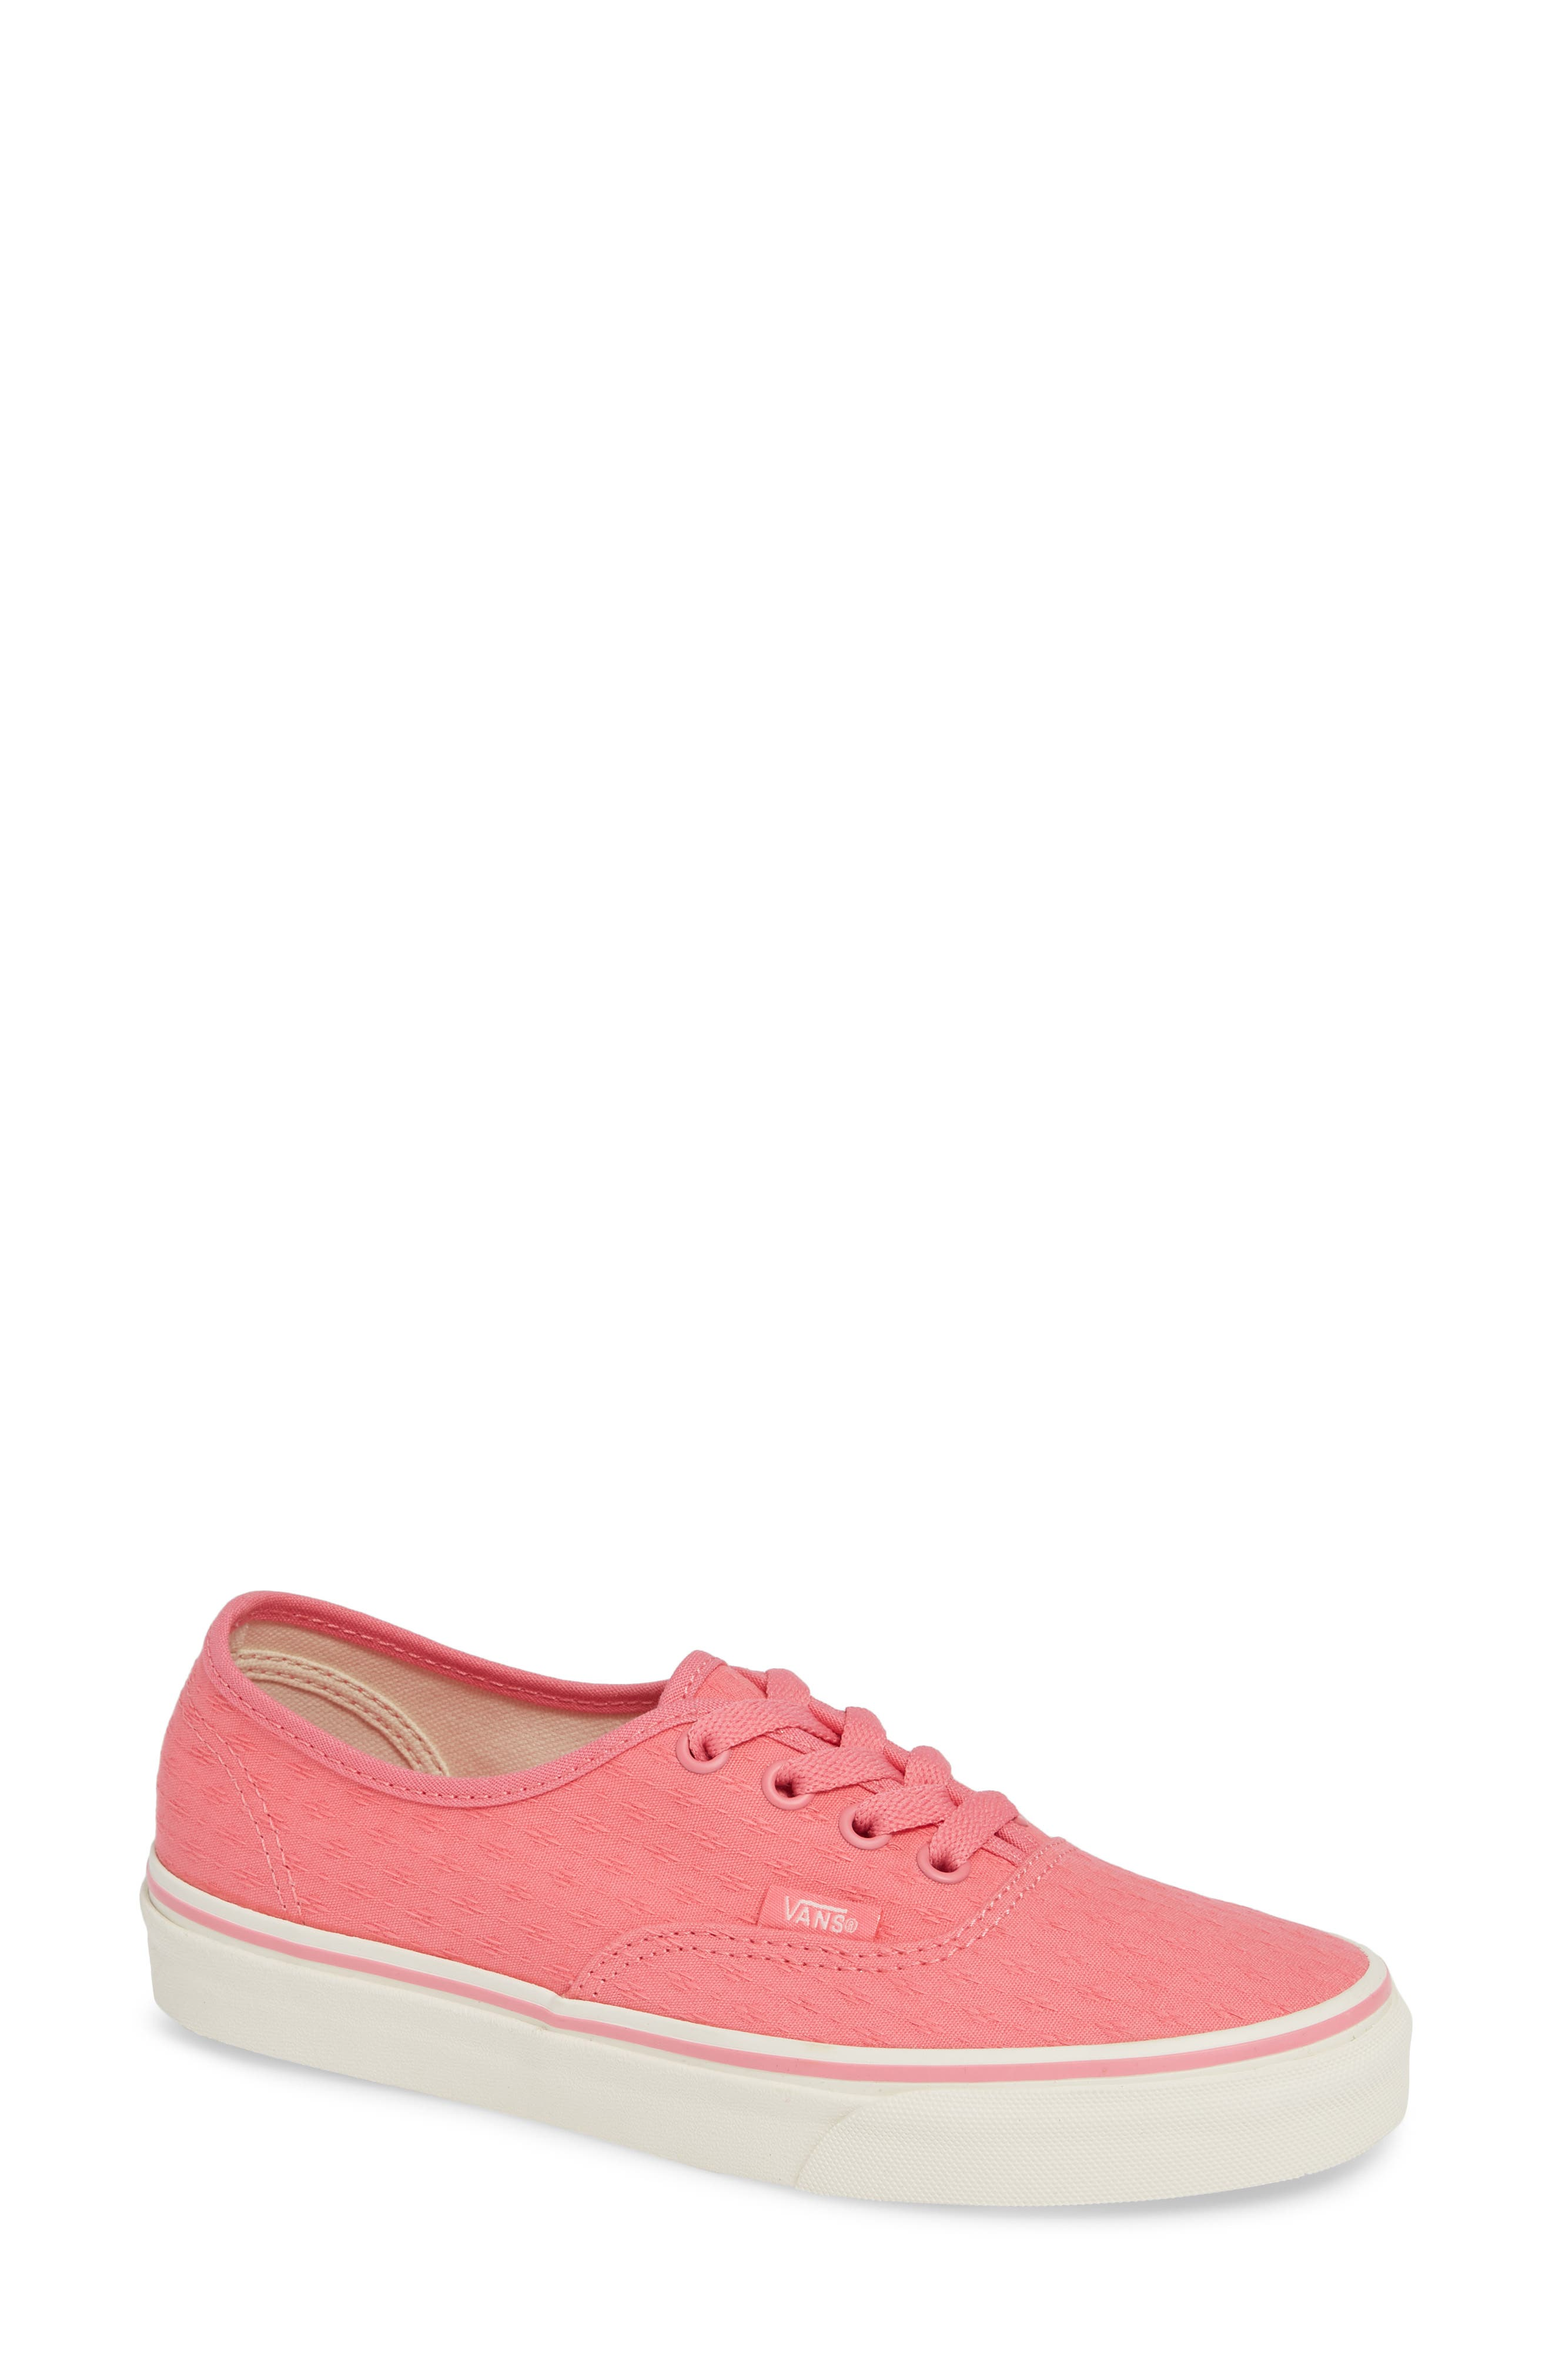 'Authentic' Sneaker,                             Main thumbnail 1, color,                             PINK LEMONADE/ MARSHMALLOW